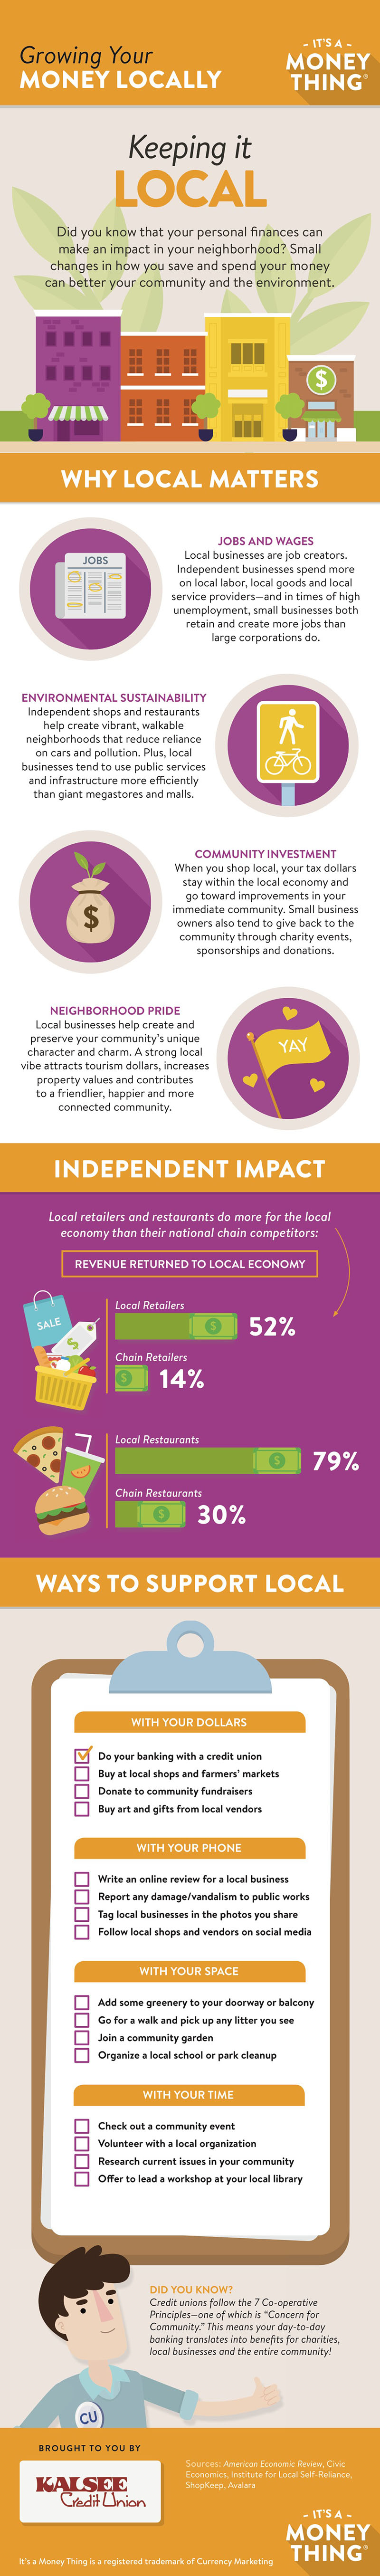 growing your money locally infographic, click for transcription